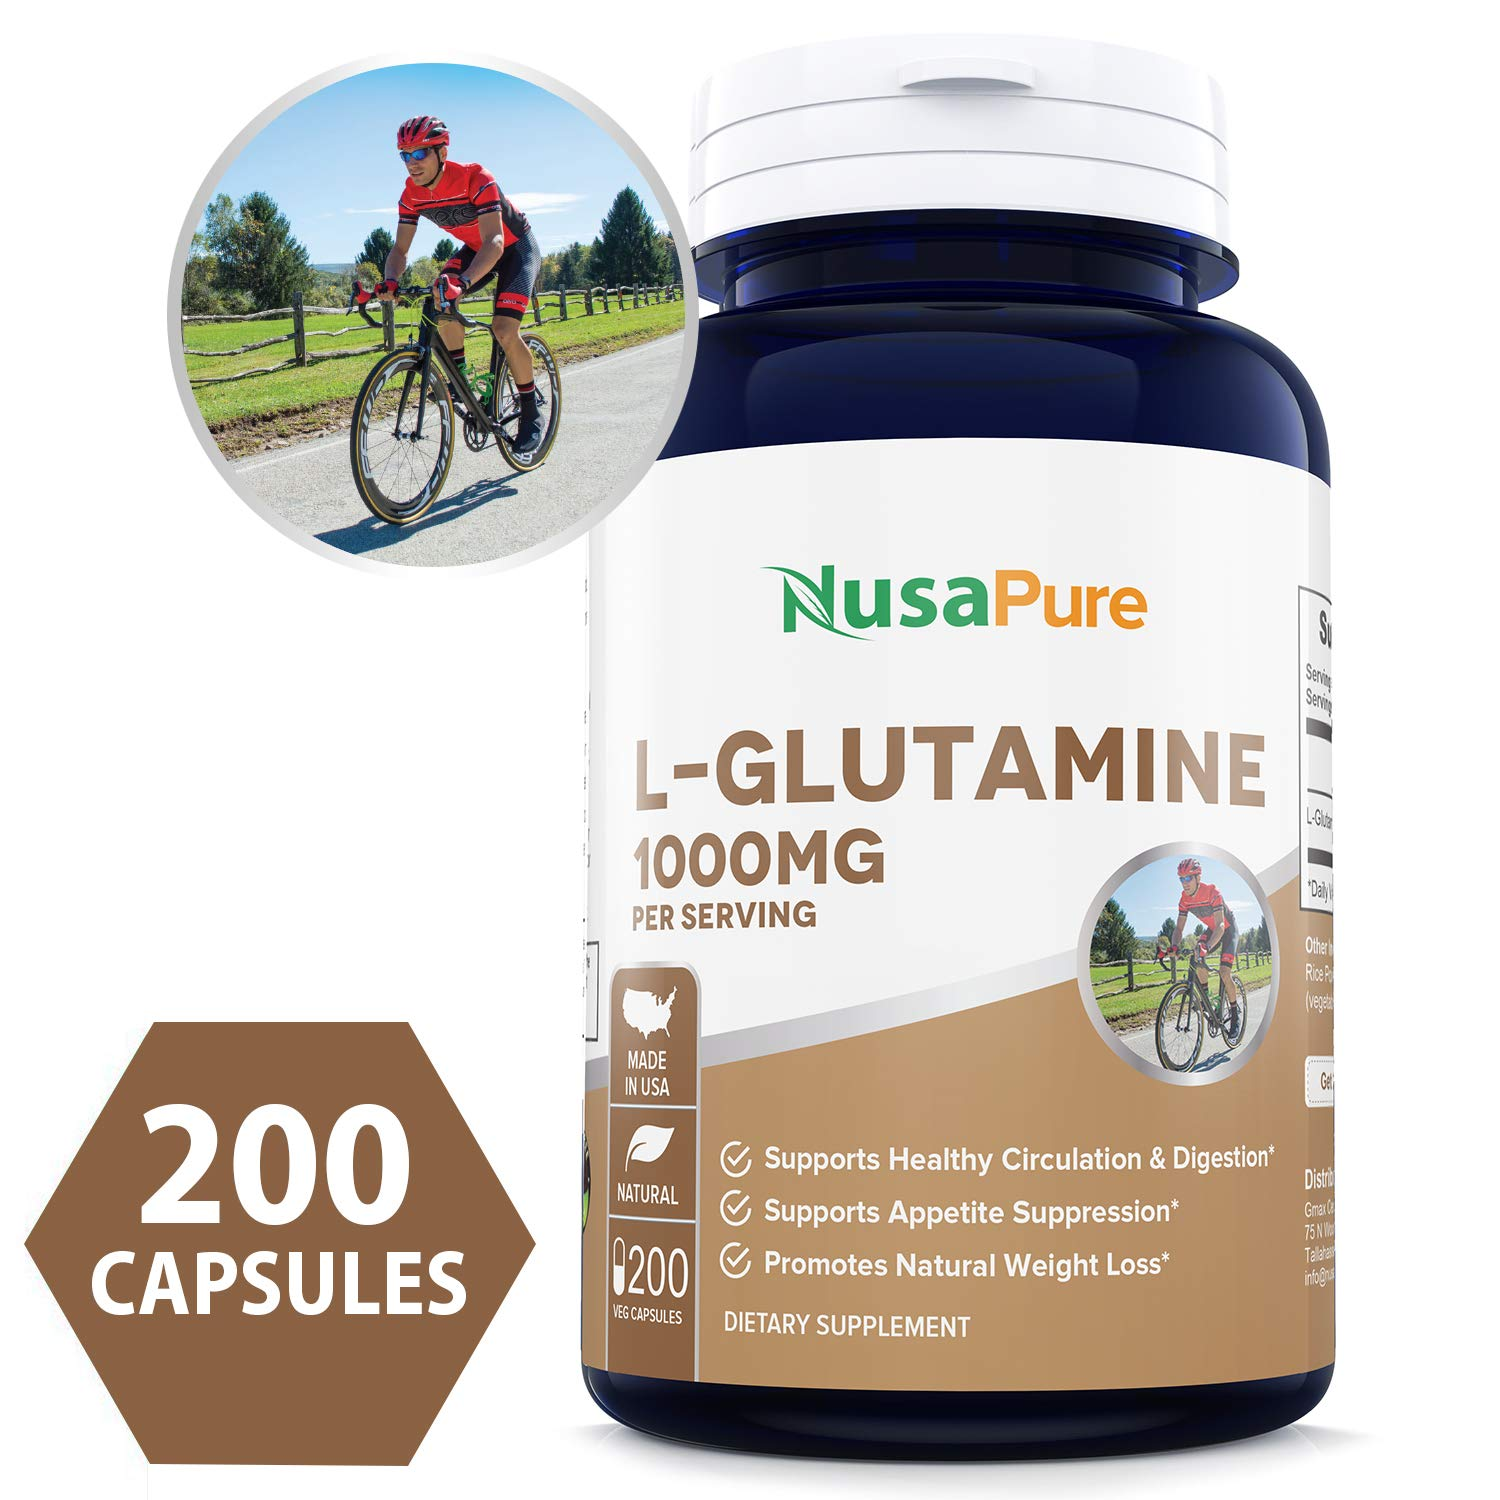 L-Glutamine 1000mg 200 Capsules (Vegetarian, Natural, Non-GMO & Gluten Free) Supports Muscle Mass, Gastrointestinal Tract & Immune Function - 500mg per Caps by NusaPure